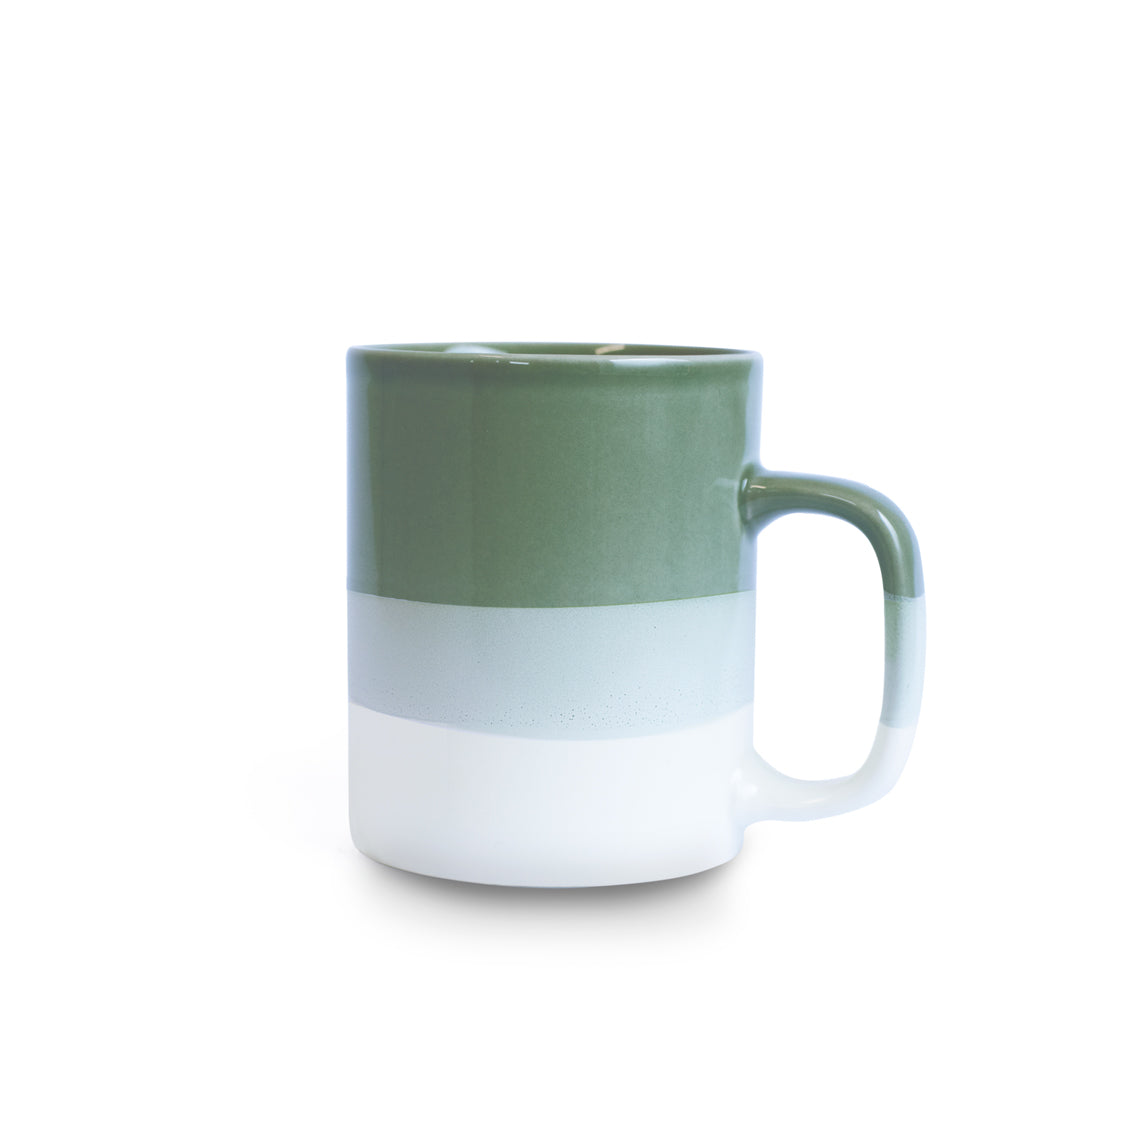 Celadon Green & White Mug